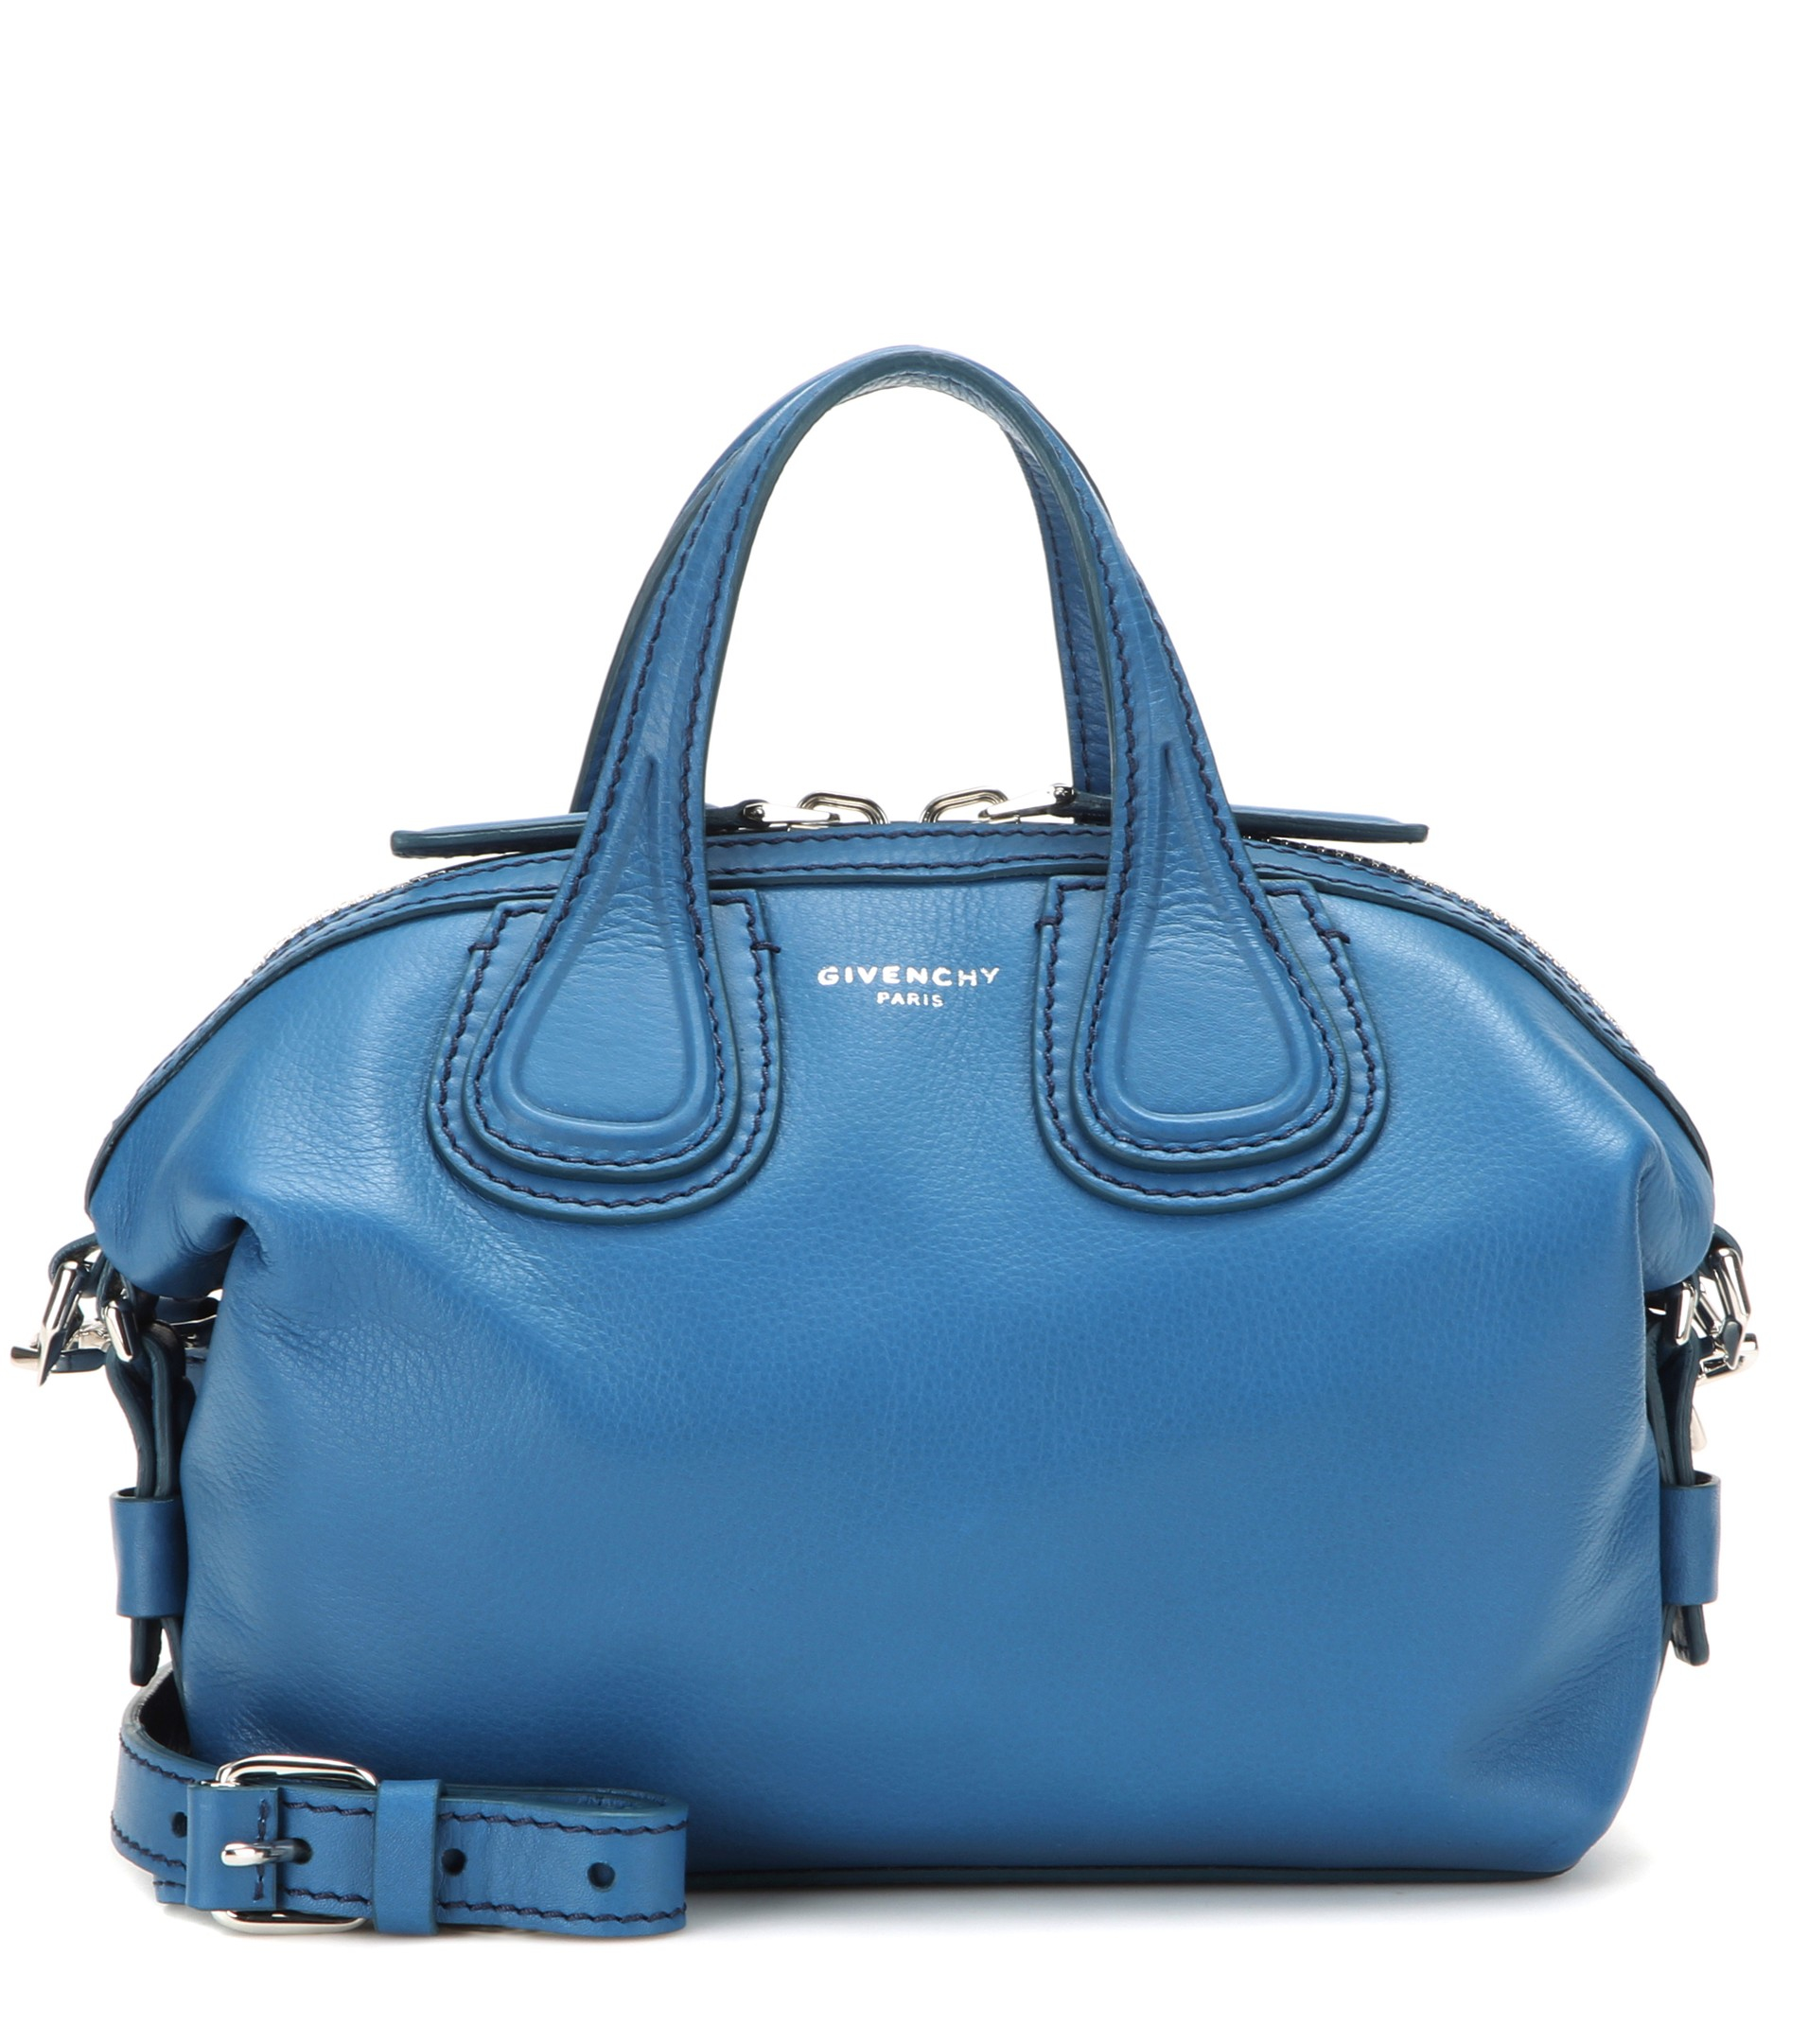 d54ec9285f40 Givenchy Nightingale Micro Leather Shoulder Bag in Blue - Lyst